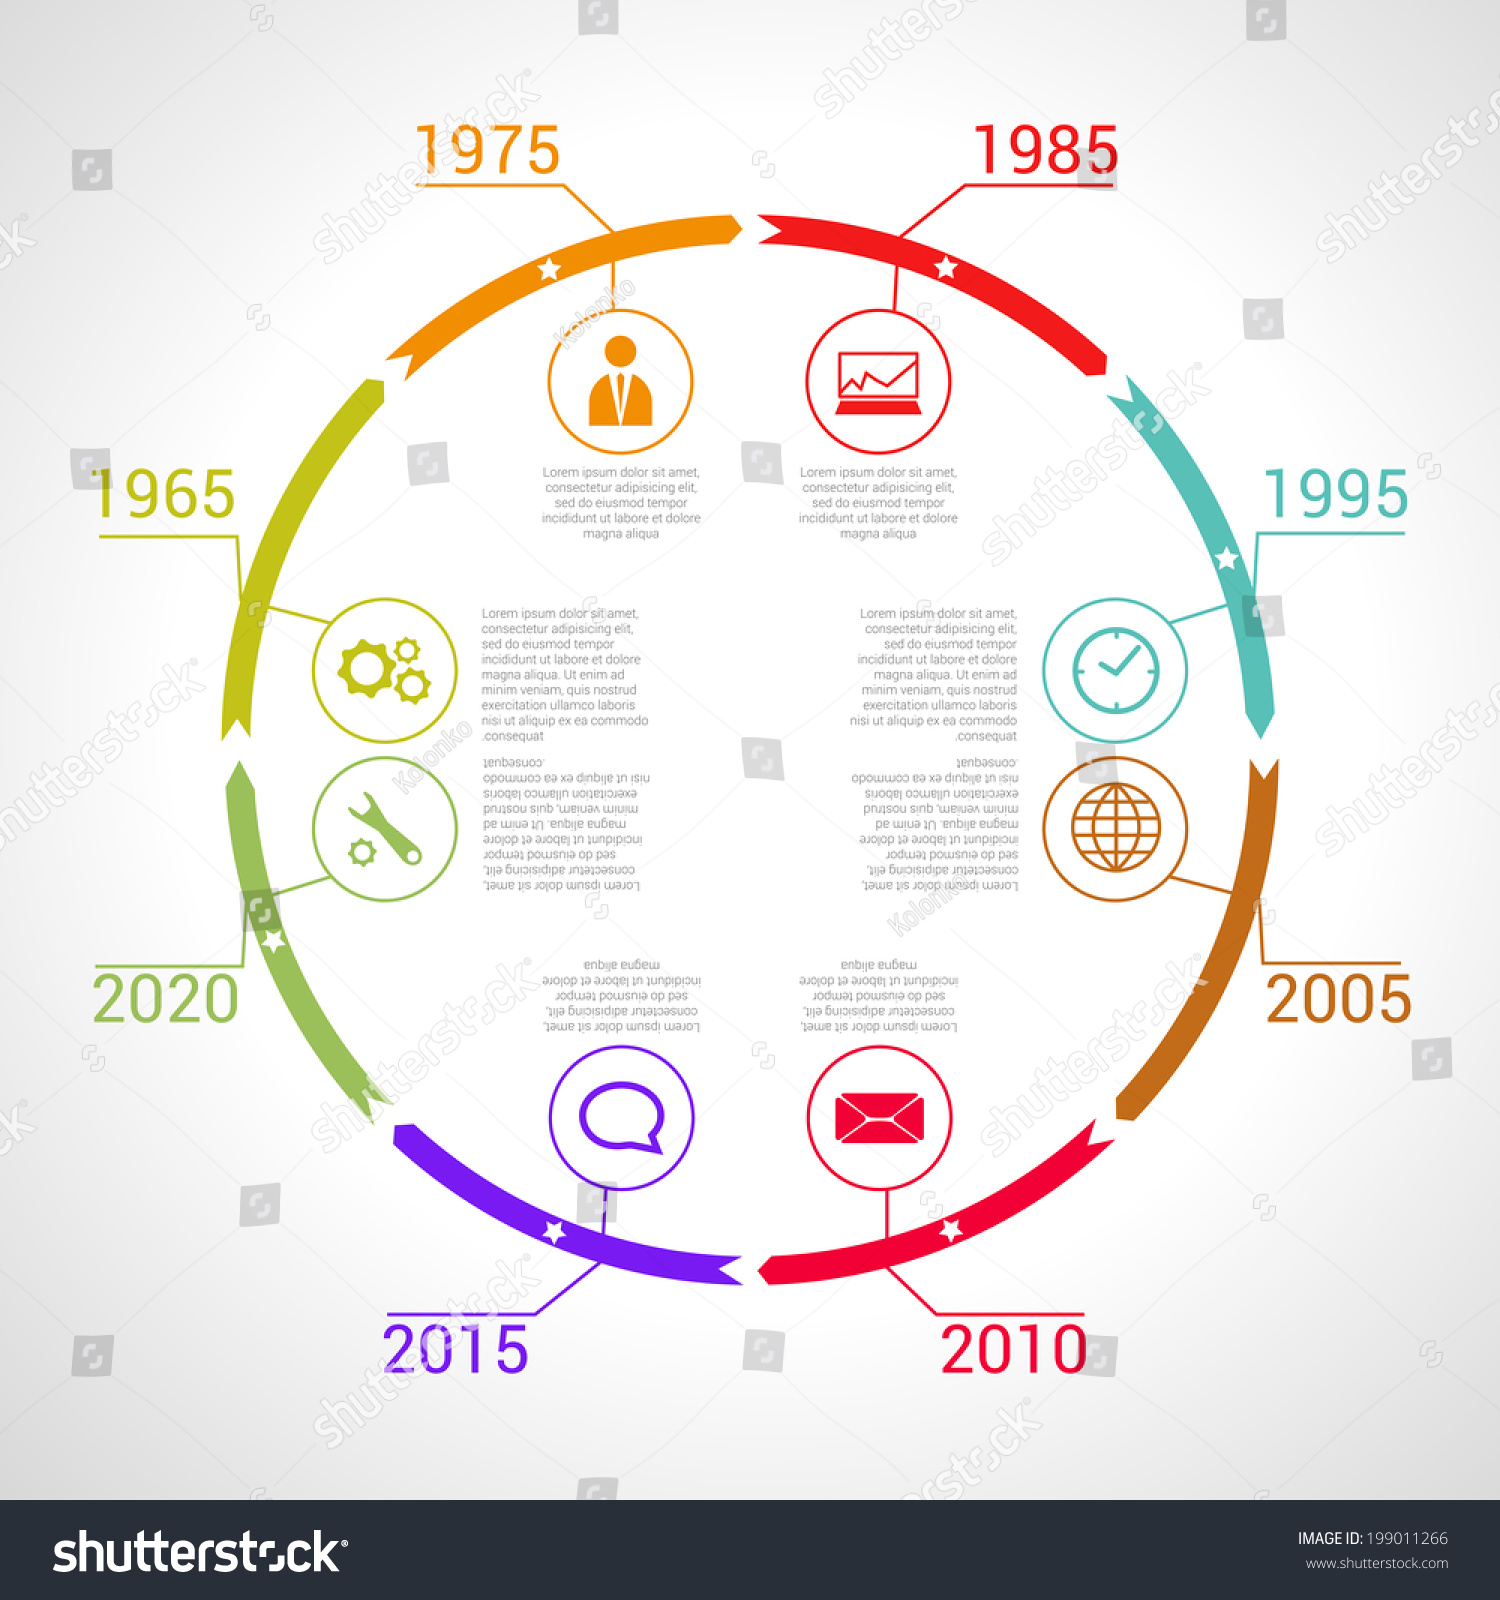 circle timeline infographic vector design template stock vector 199011266 shutterstock. Black Bedroom Furniture Sets. Home Design Ideas